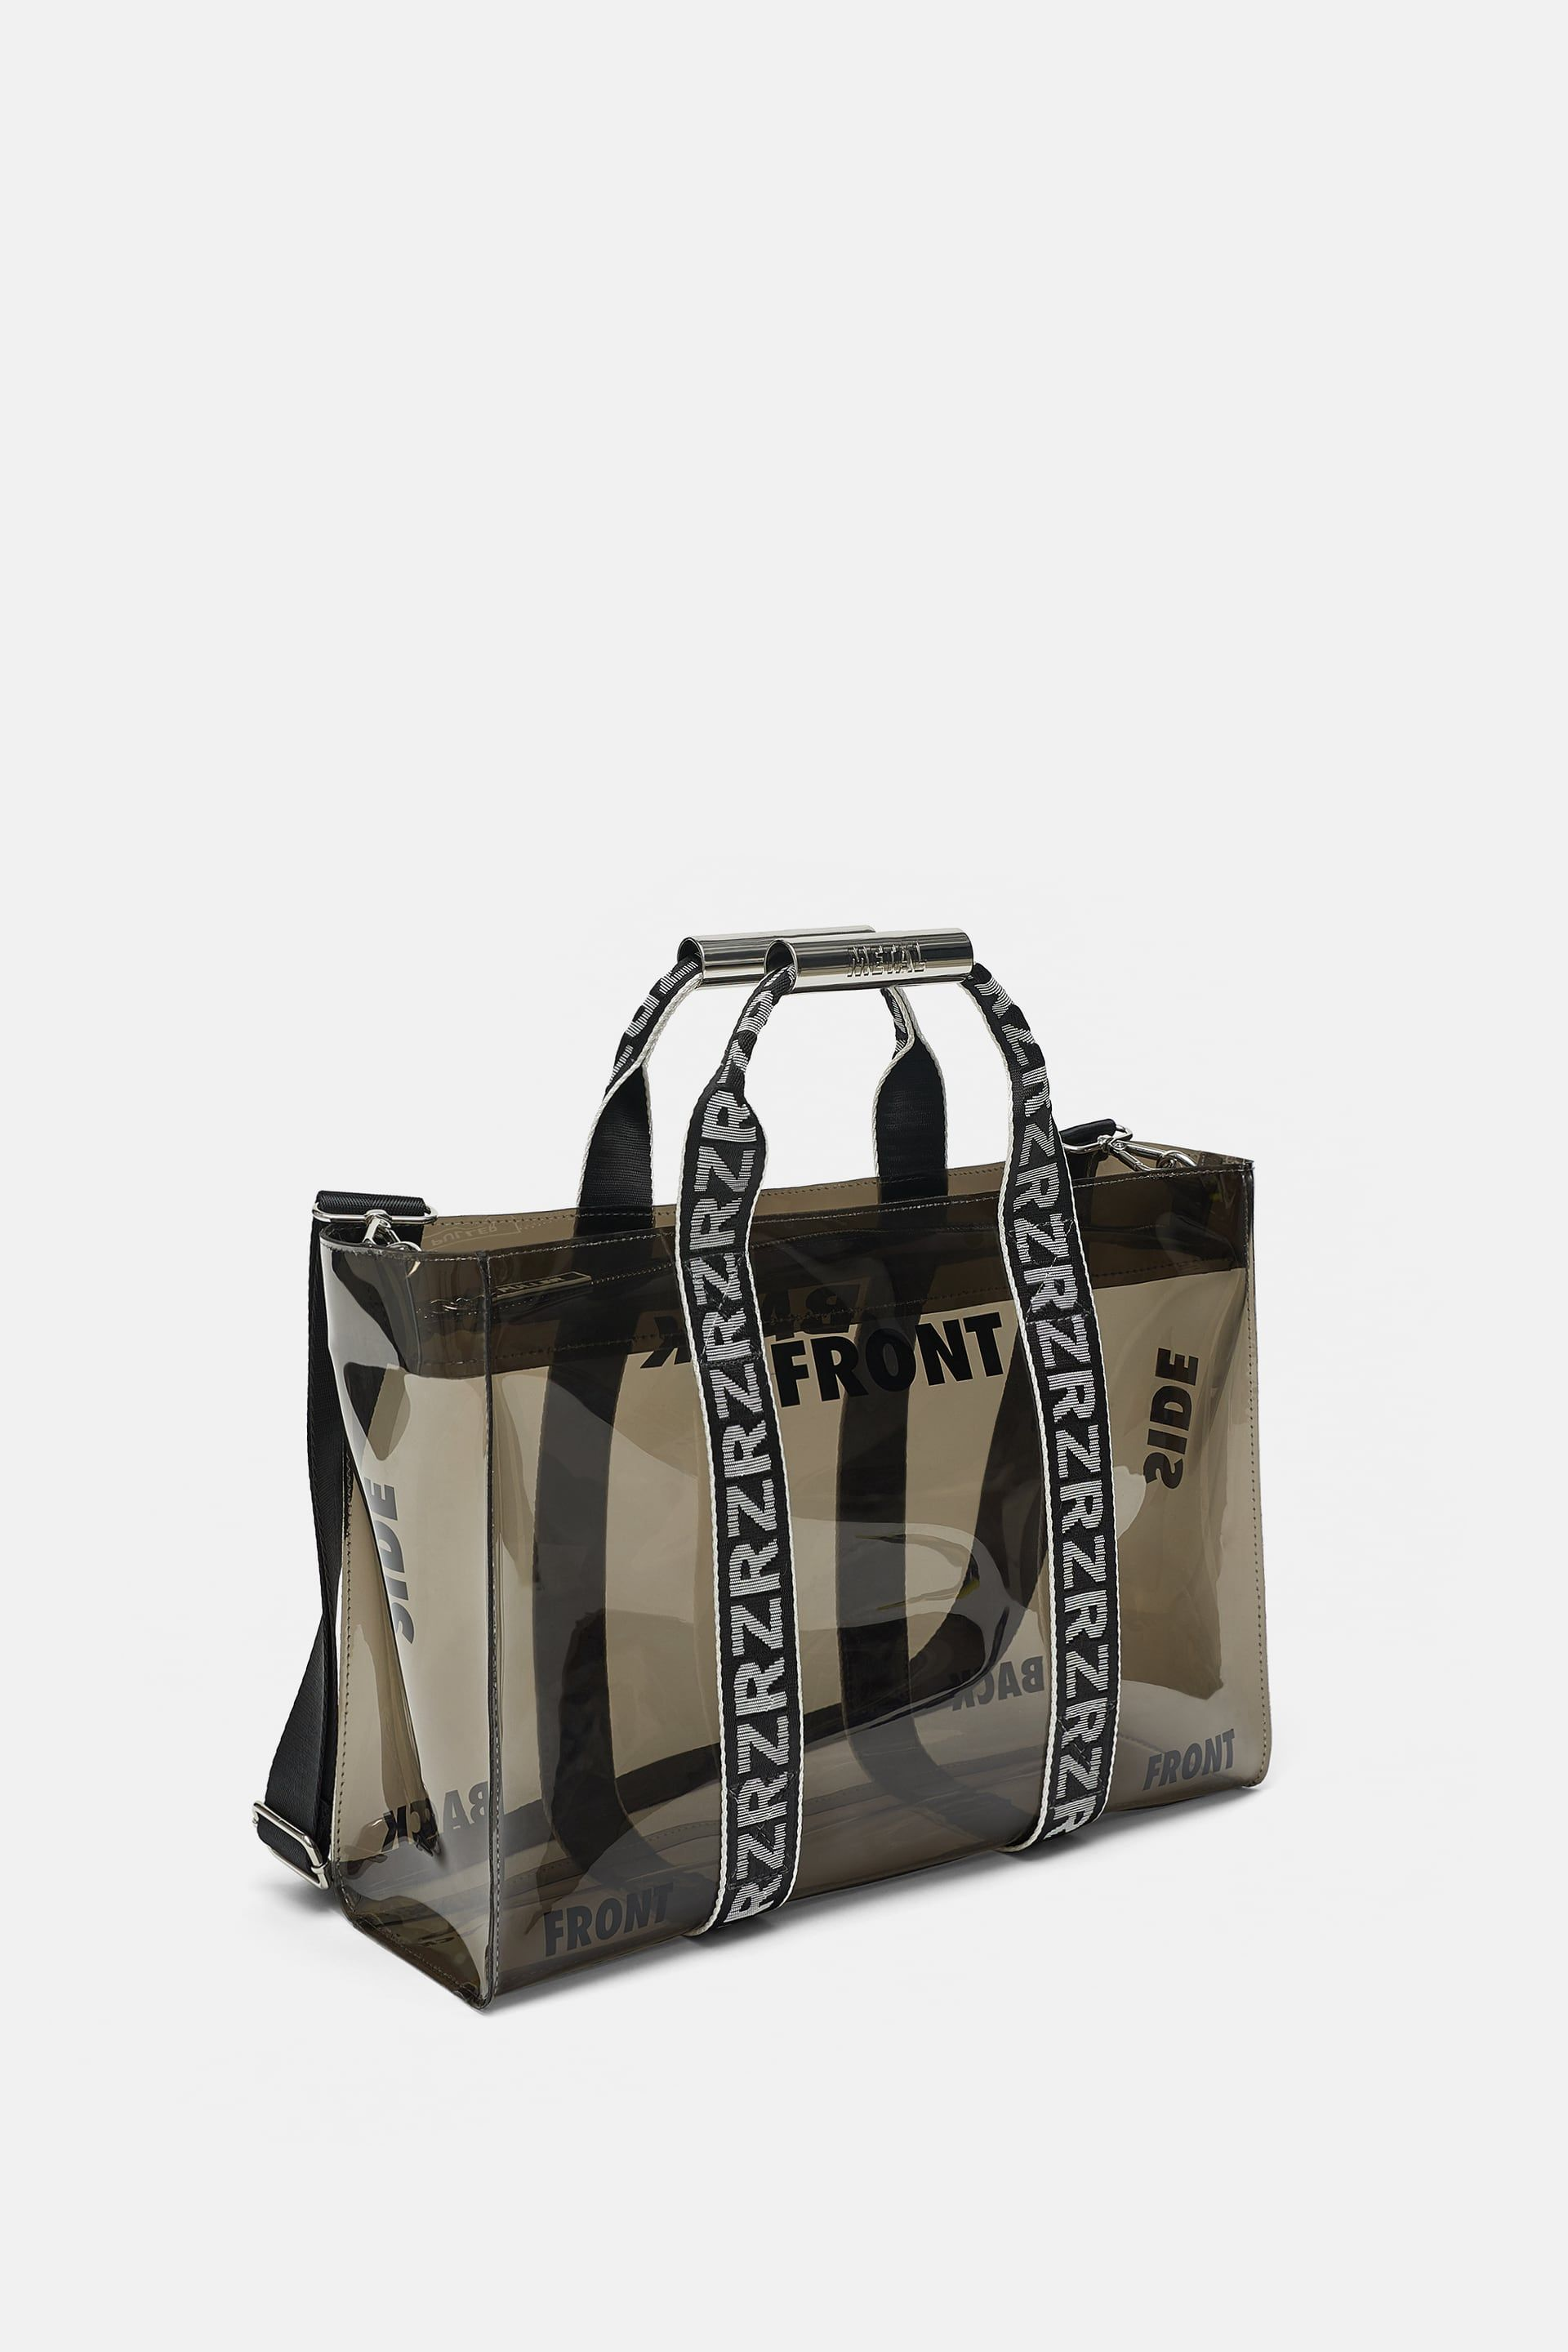 Image 1 Of Vinyl Tote Bag With Slogans From Zara Purses And Bags Bags Designer